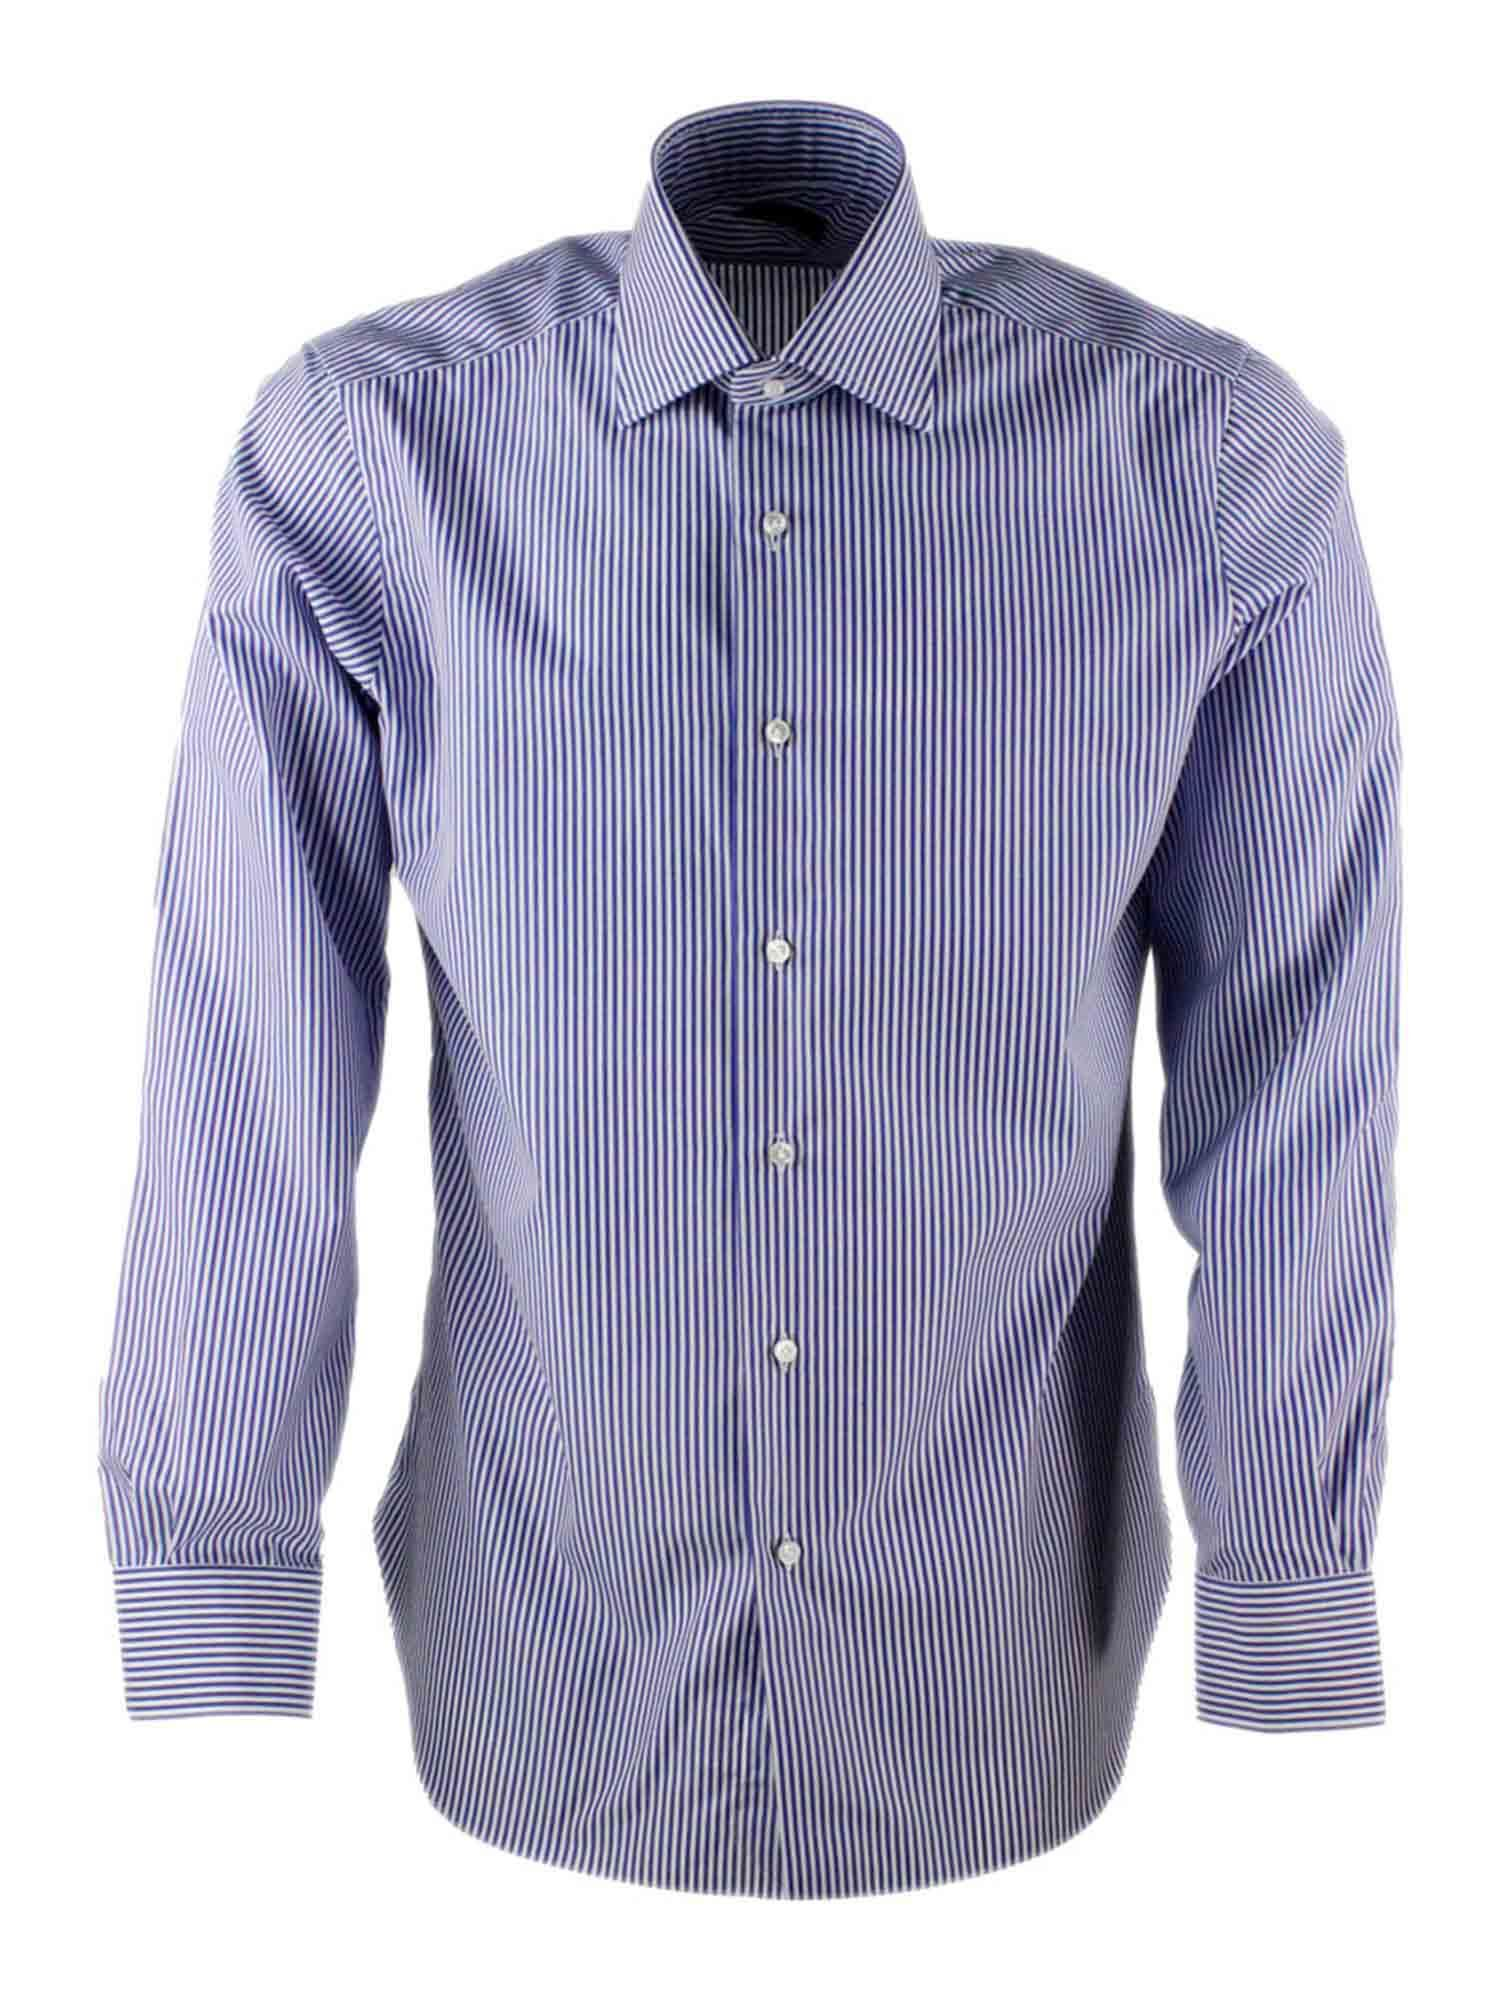 Barba STRIPED SHIRT IN WHITE AND LIGHT BLUE